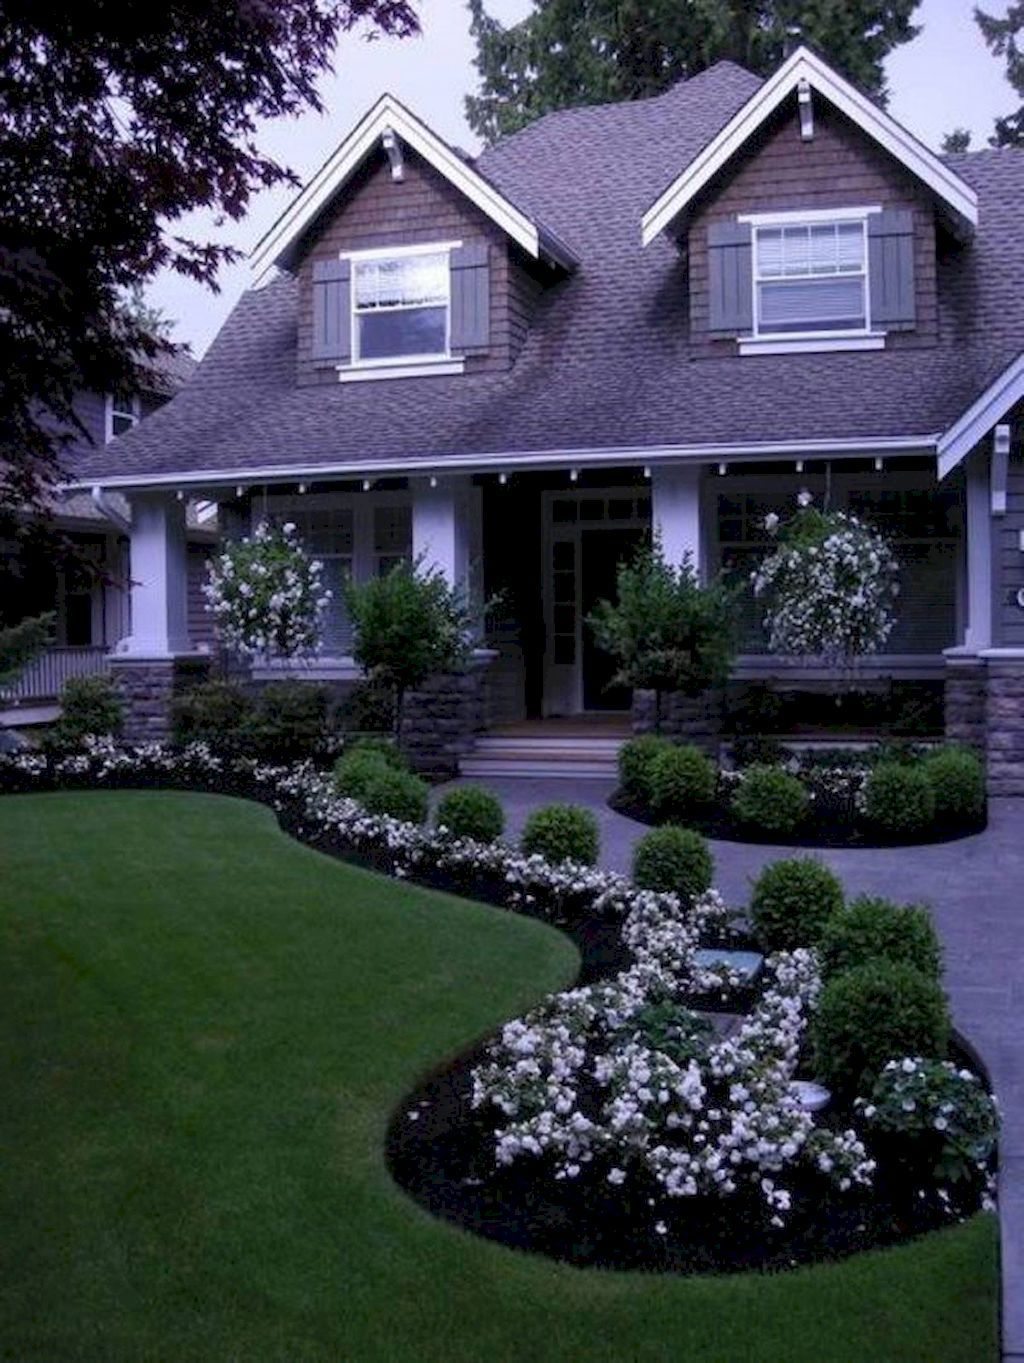 40 beautiful front yard landscaping ideas yard for Landscape design front of house